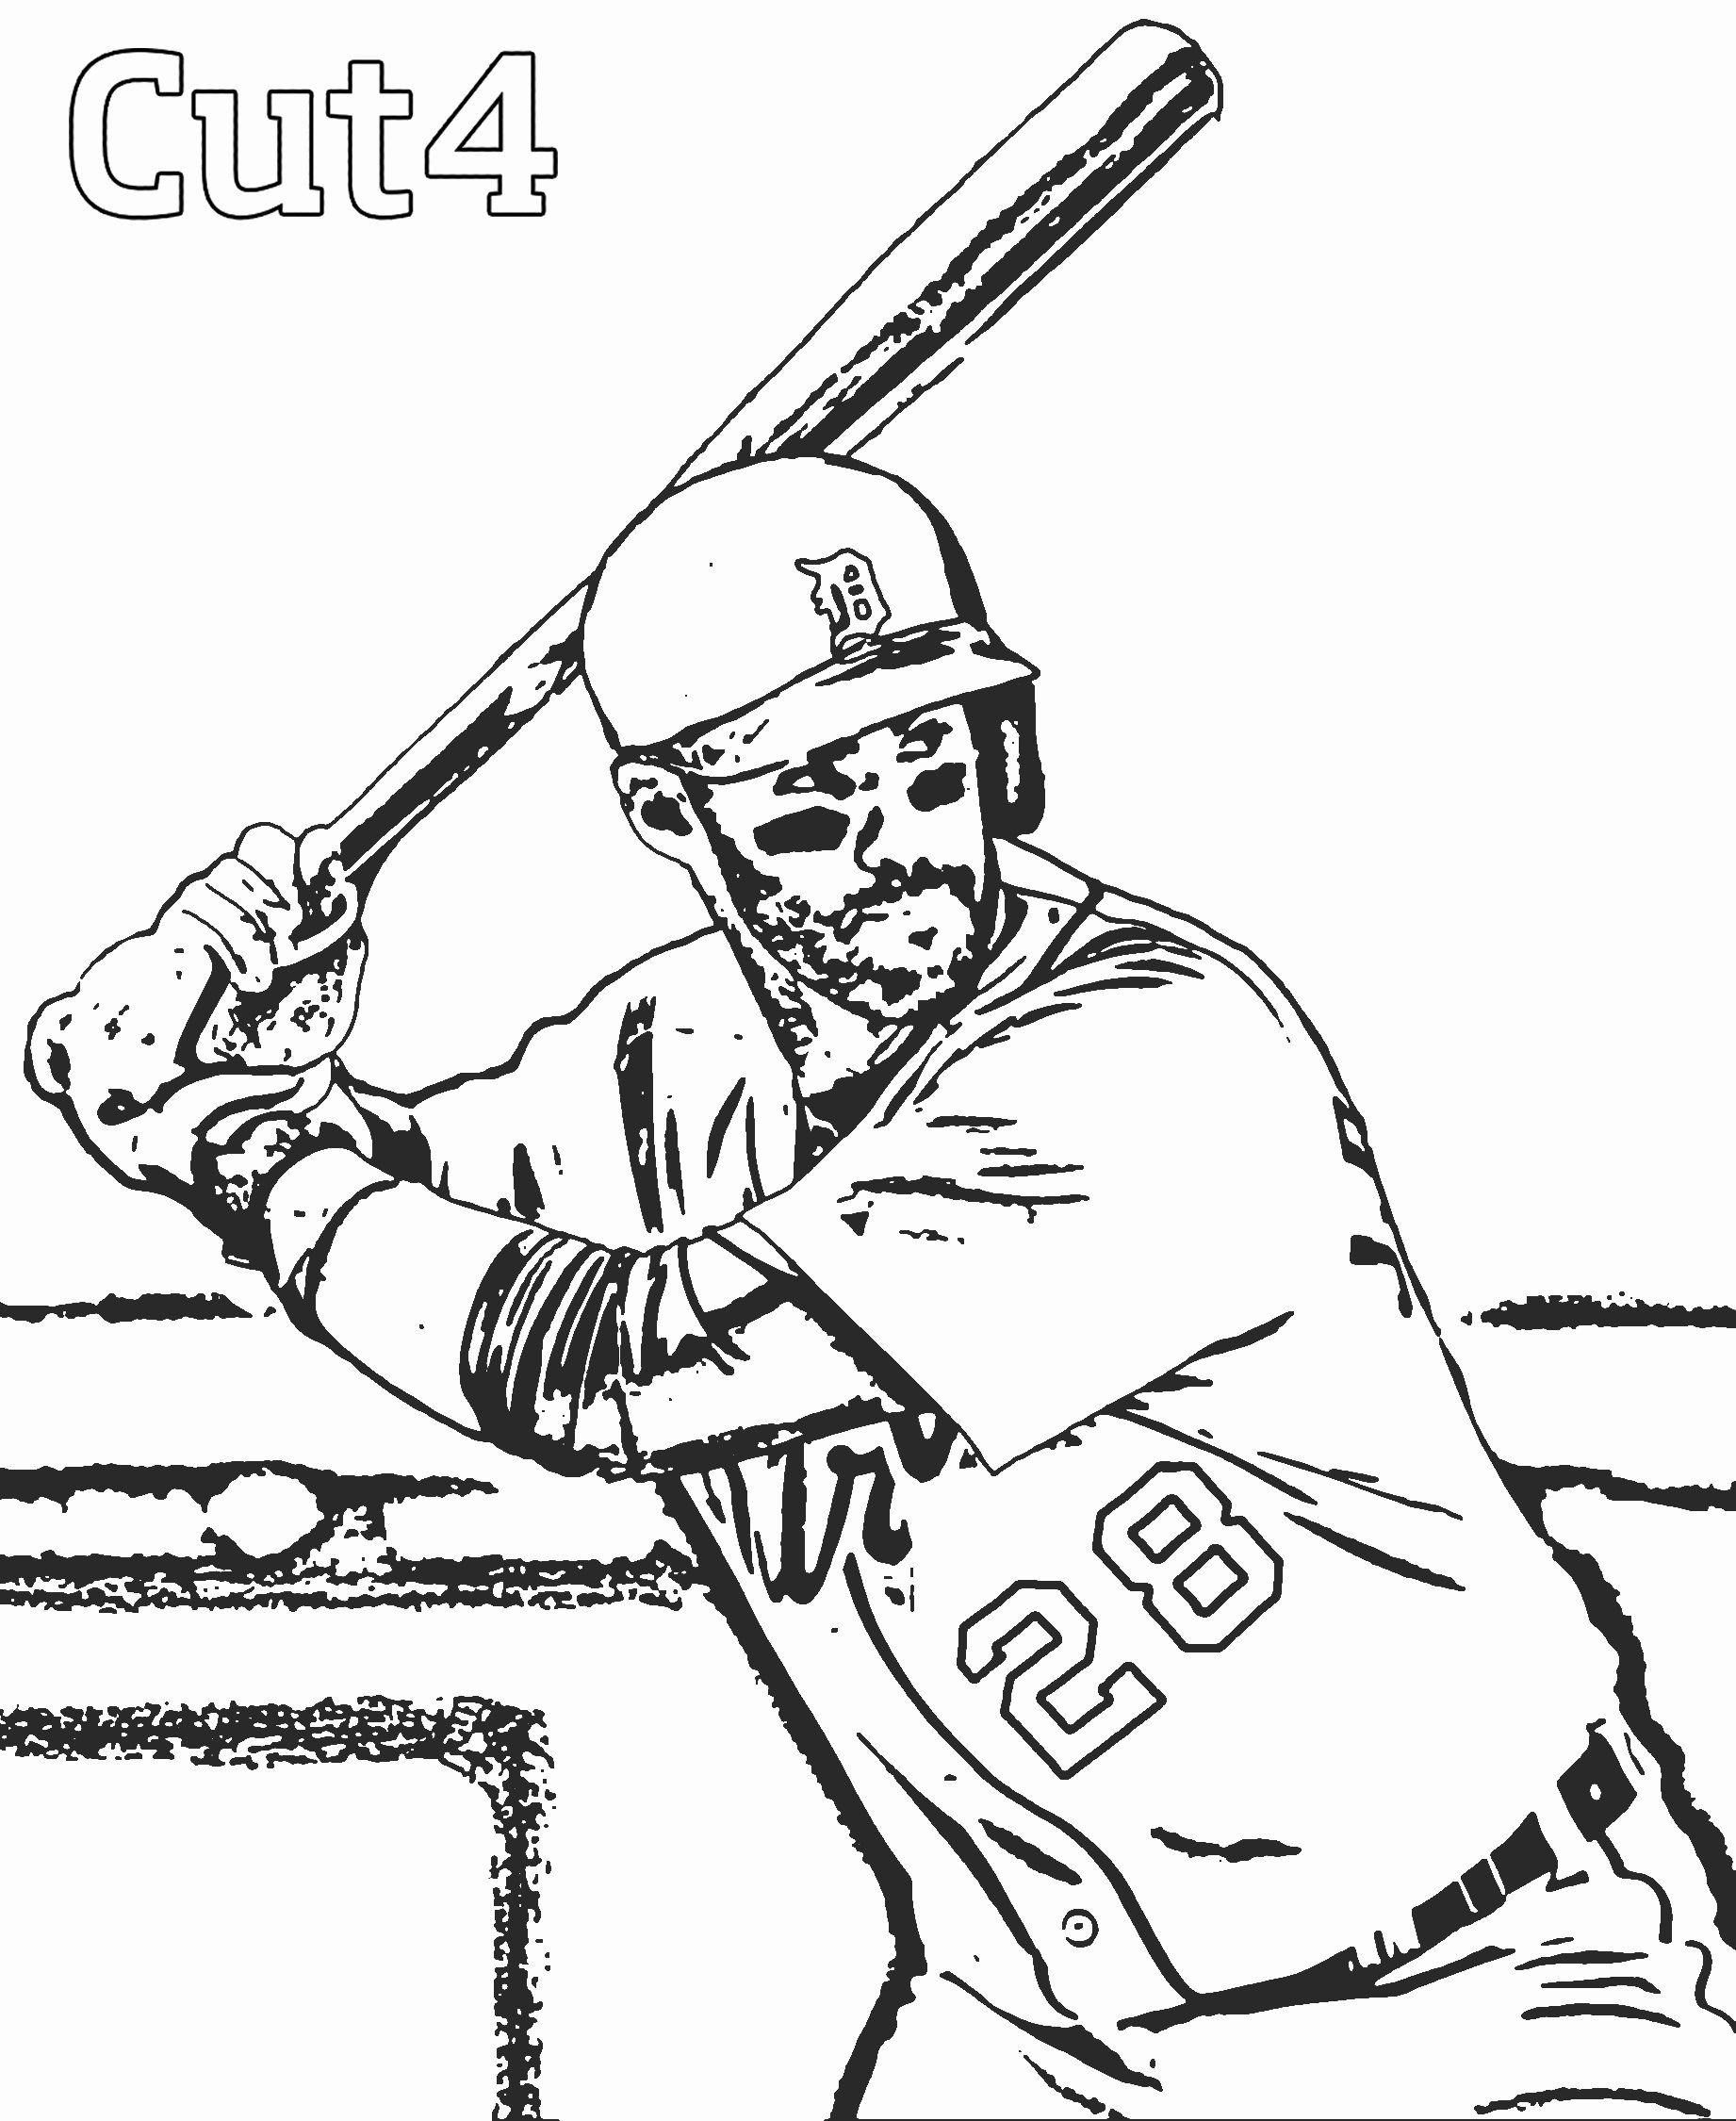 24 Odell Beckham Jr Coloring Page In 2020 Baseball Coloring Pages Sports Coloring Pages Coloring Pages